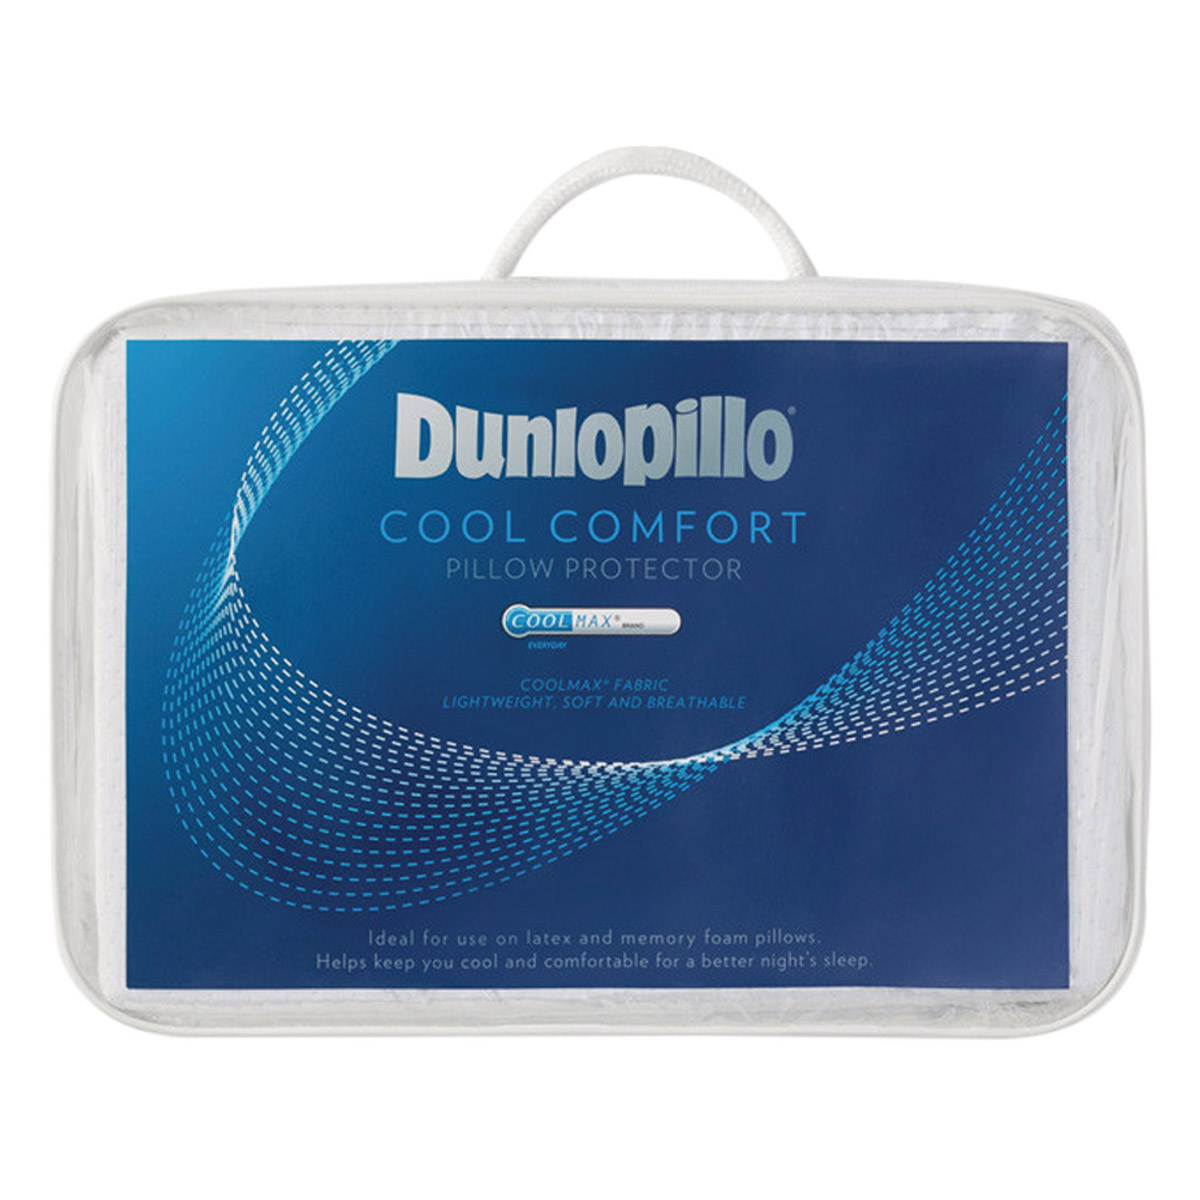 Dunlopillo Coolmax Cool Comfort Pillow Protector